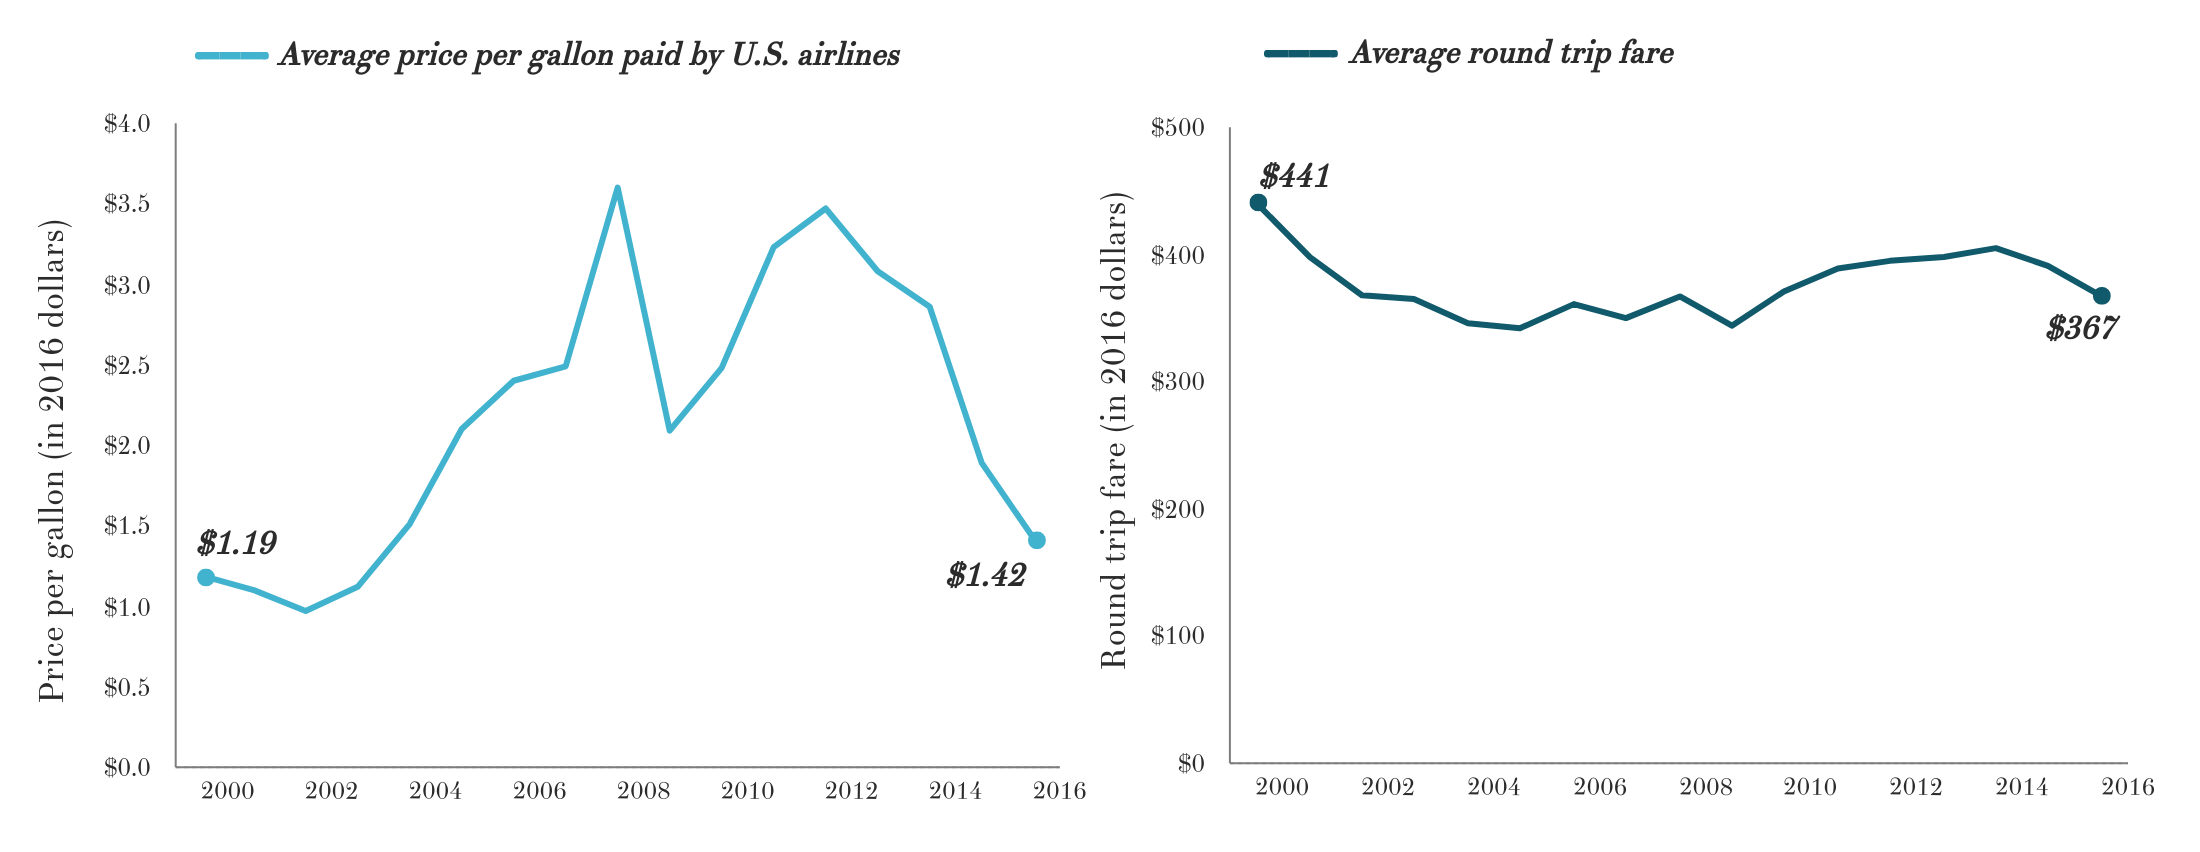 Jet fuel prices have dropped significantly. Why haven't ticket.